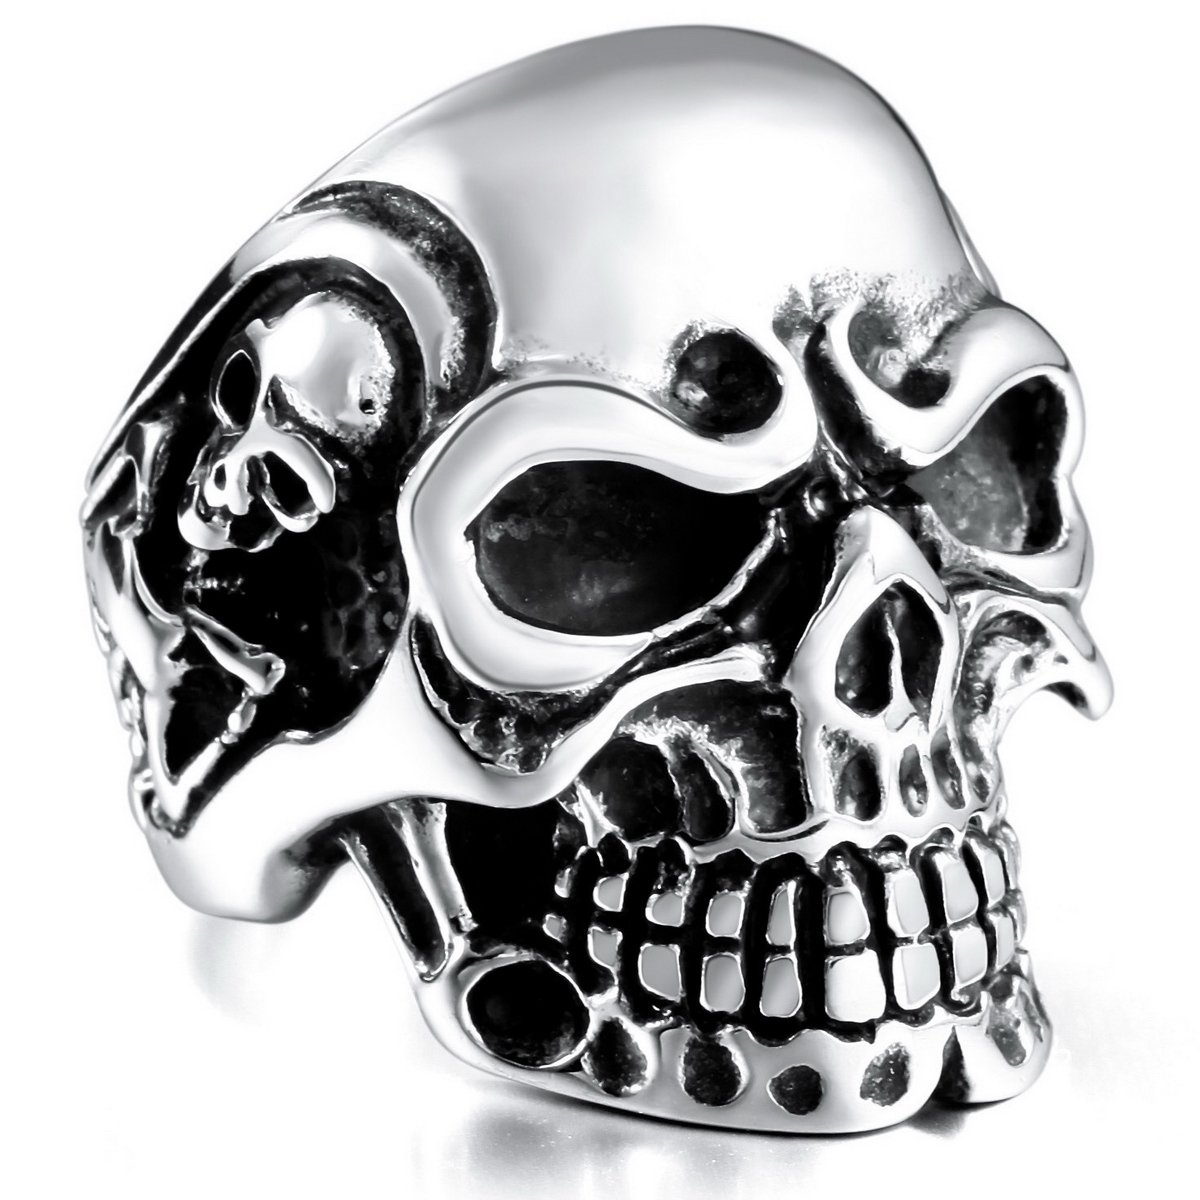 MOWOM Black Stainless Steel Ring Silver Tone Skull Bone ca5040031-parent